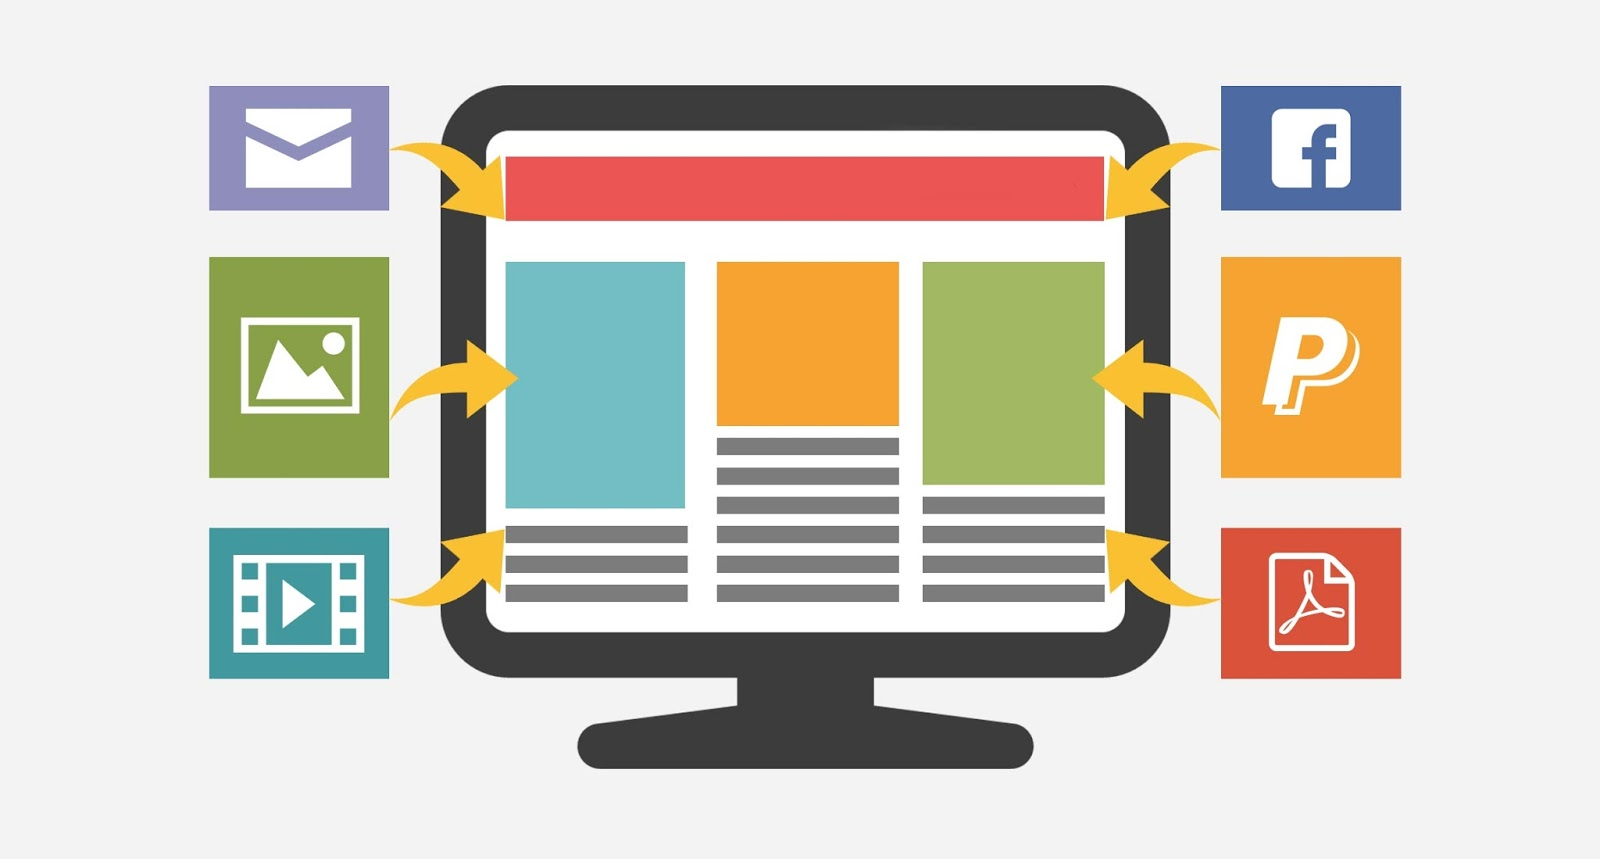 website creation using website builders letsfiddle a lot of platforms are available on the web that let us create our own websites most of these platforms function in a similar manner and enables a